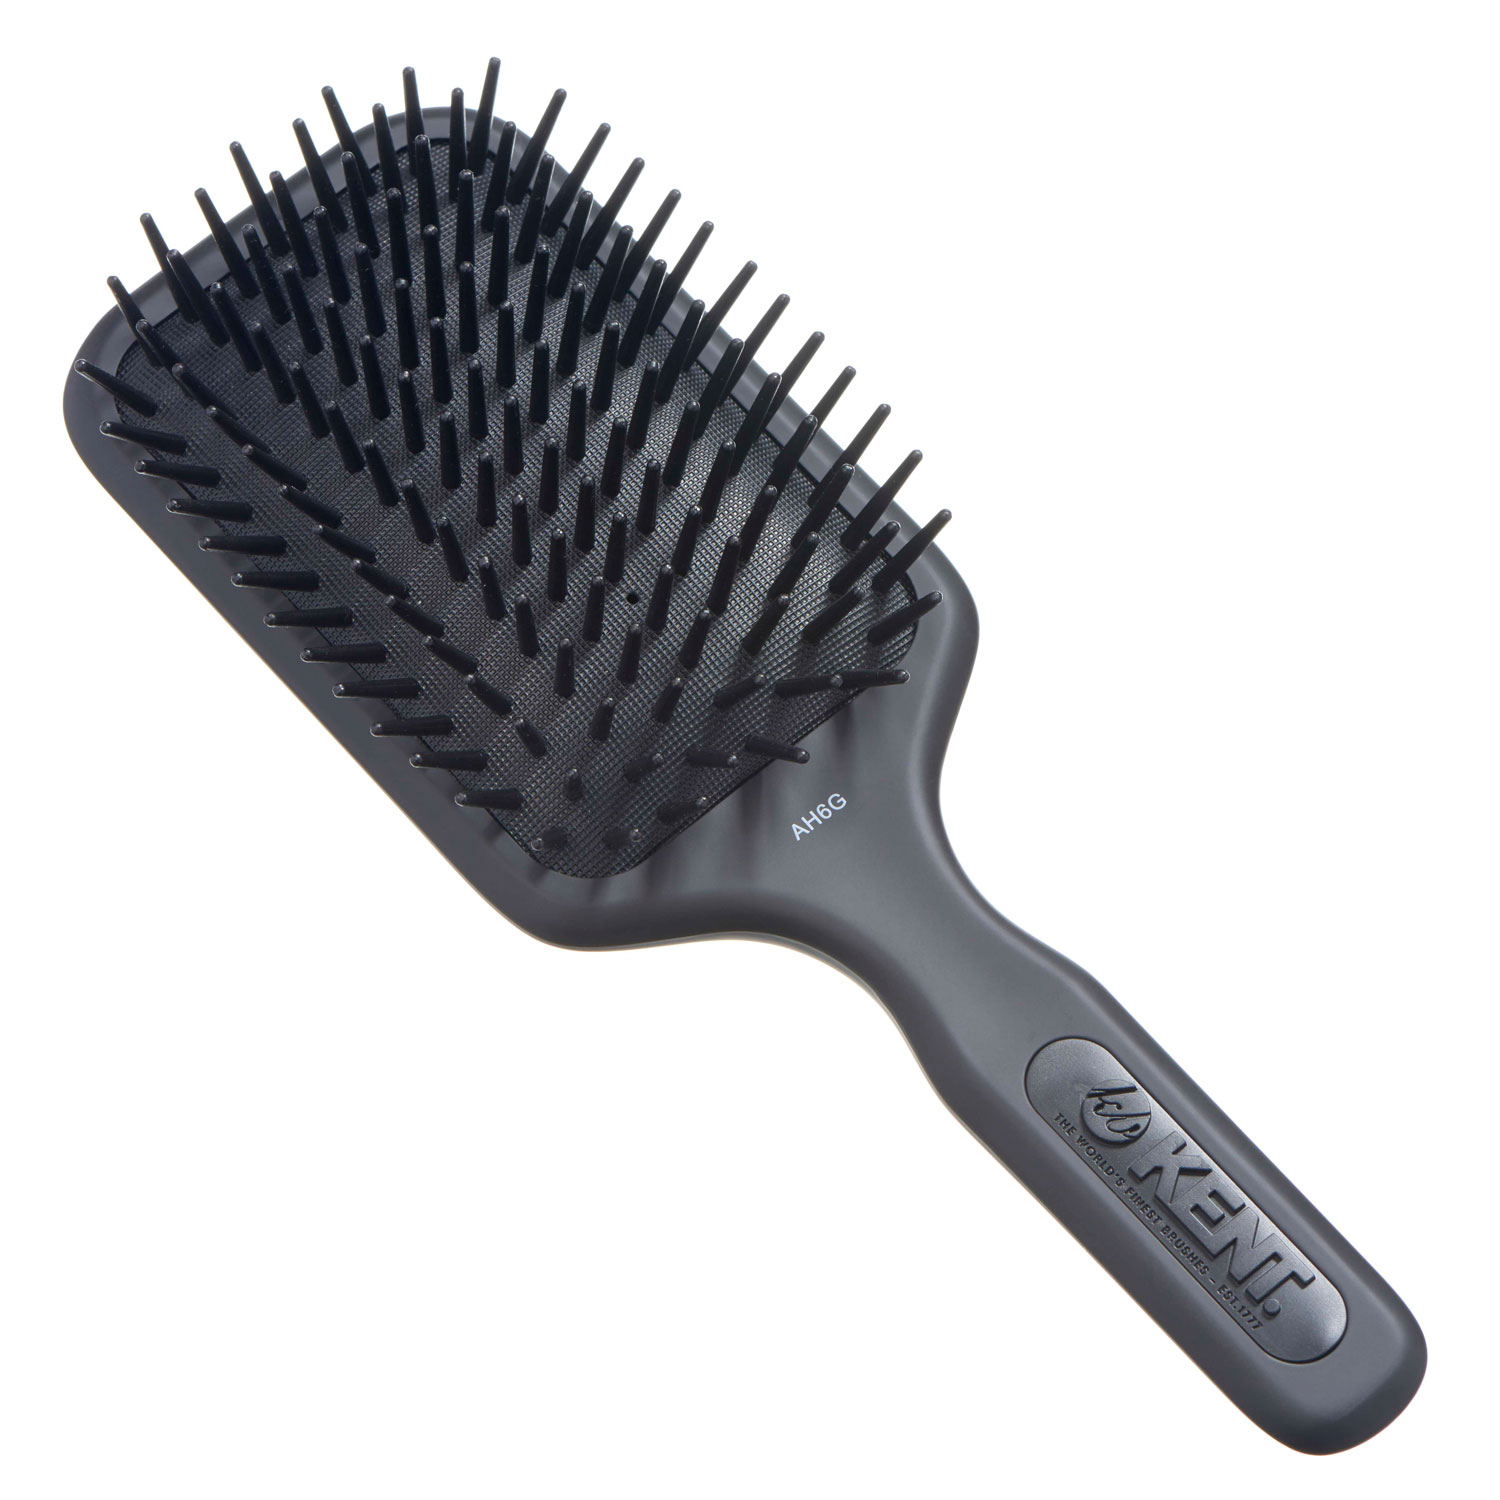 KENT BRUSHES AH6G Paddle Brush, £11